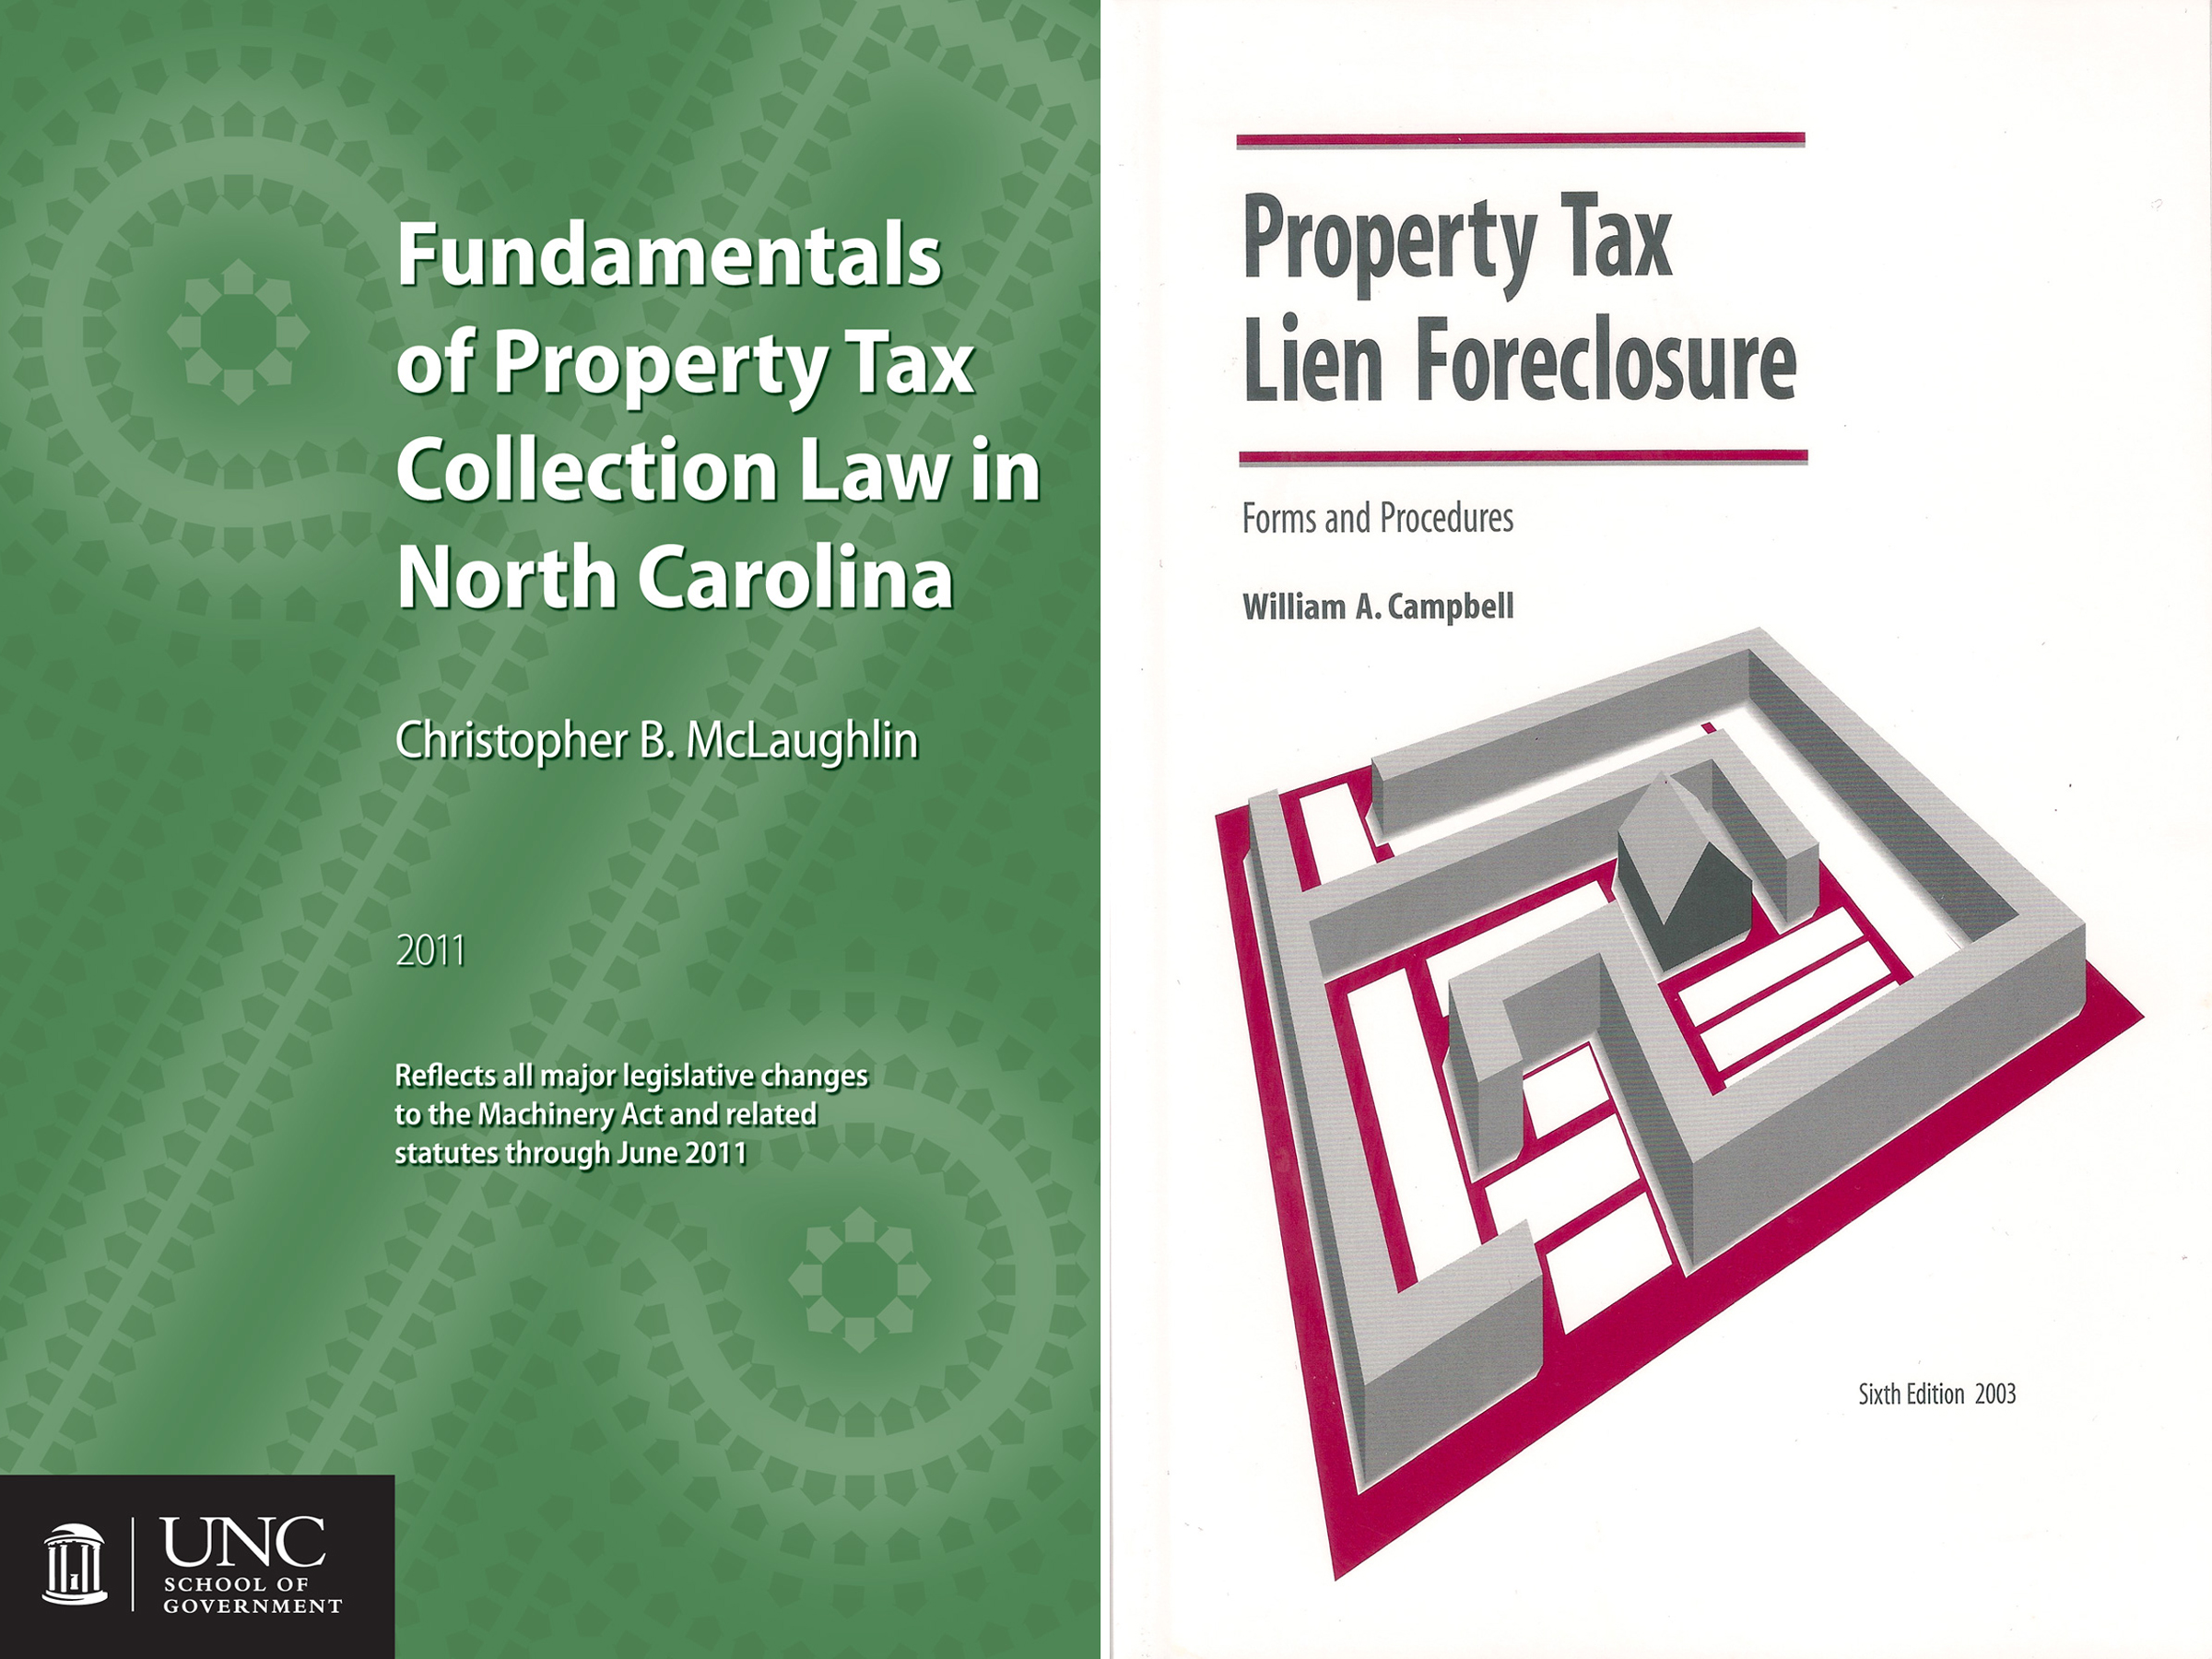 Cover image for Fundamentals of Property Tax Collection Law in NC and Property Tax Lien Foreclosure Forms and Procedures